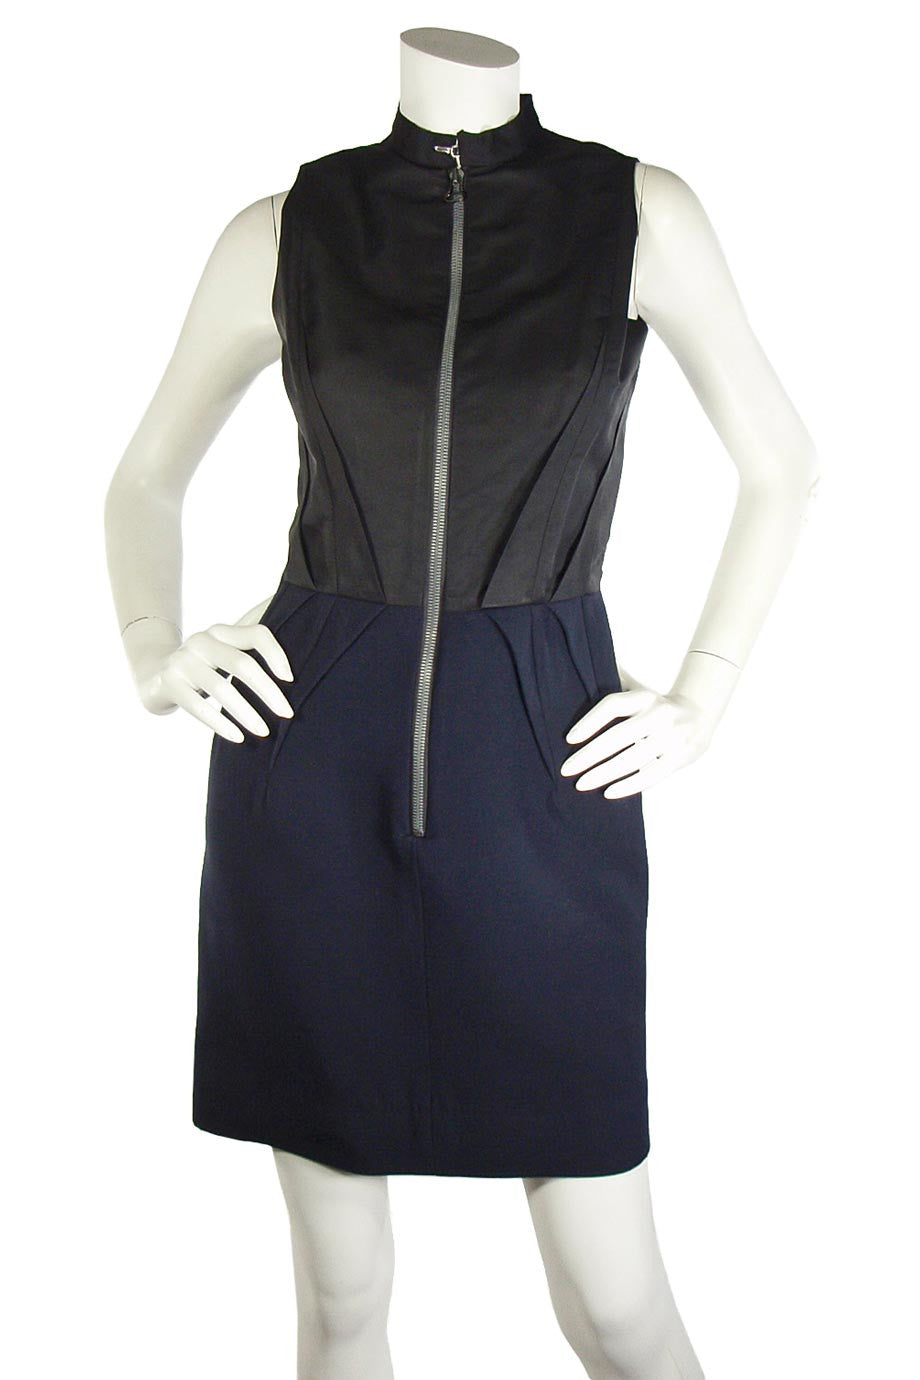 Lanvin Black + Navy Wool Sleeveless Sheath Dress / Sz 2 - Style Therapy  - 1